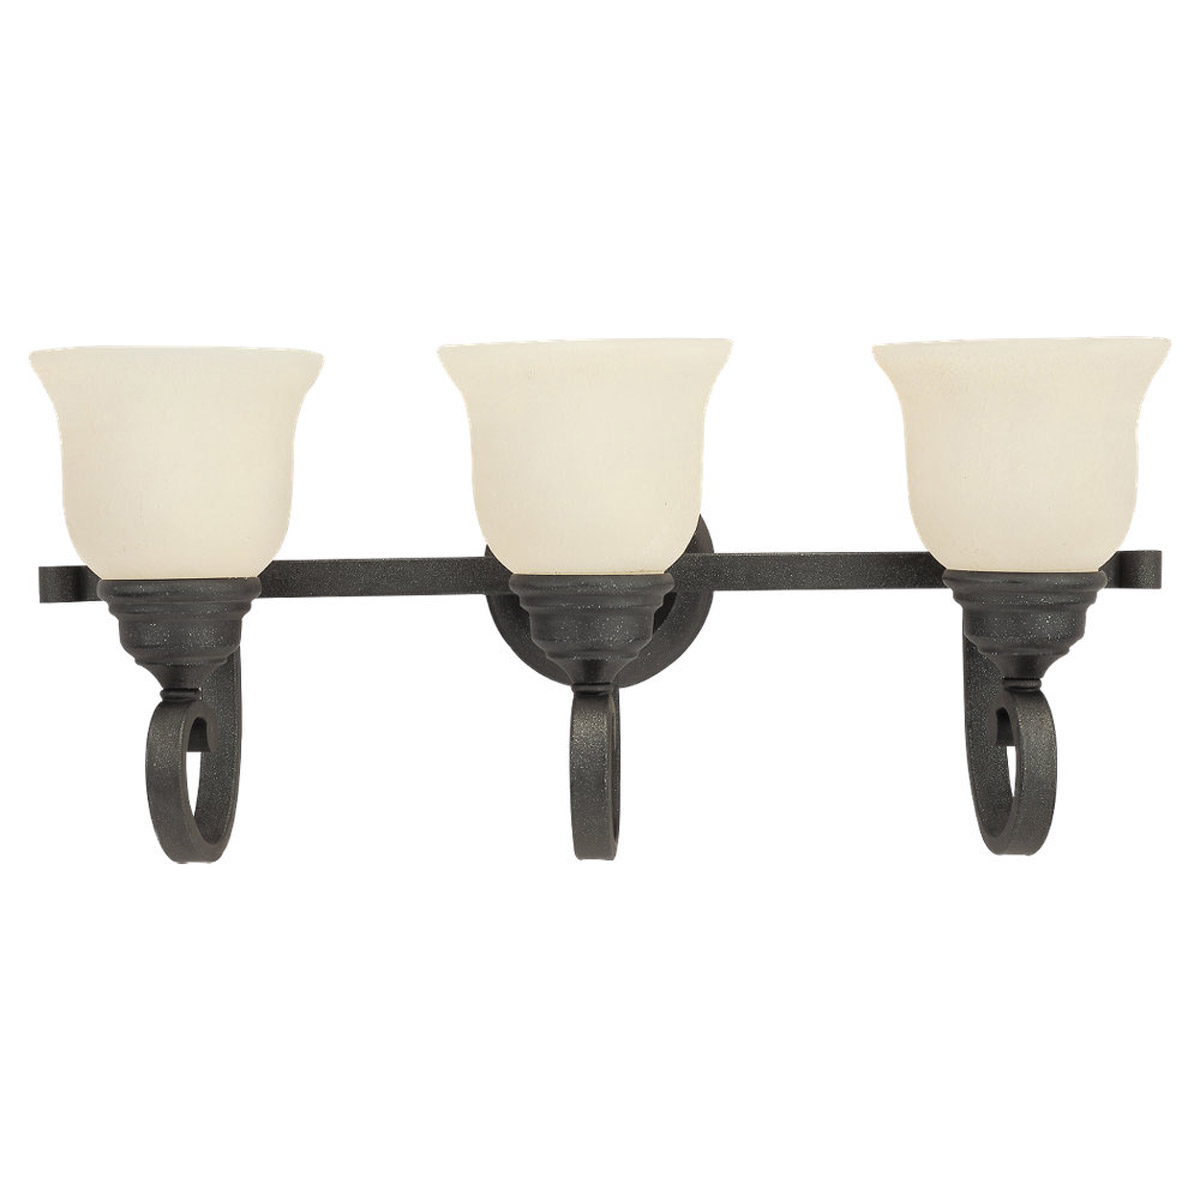 Sea Gull Lighting Serenity 3 Light Bath Vanity in Weathered Iron 49060BLE-07 photo